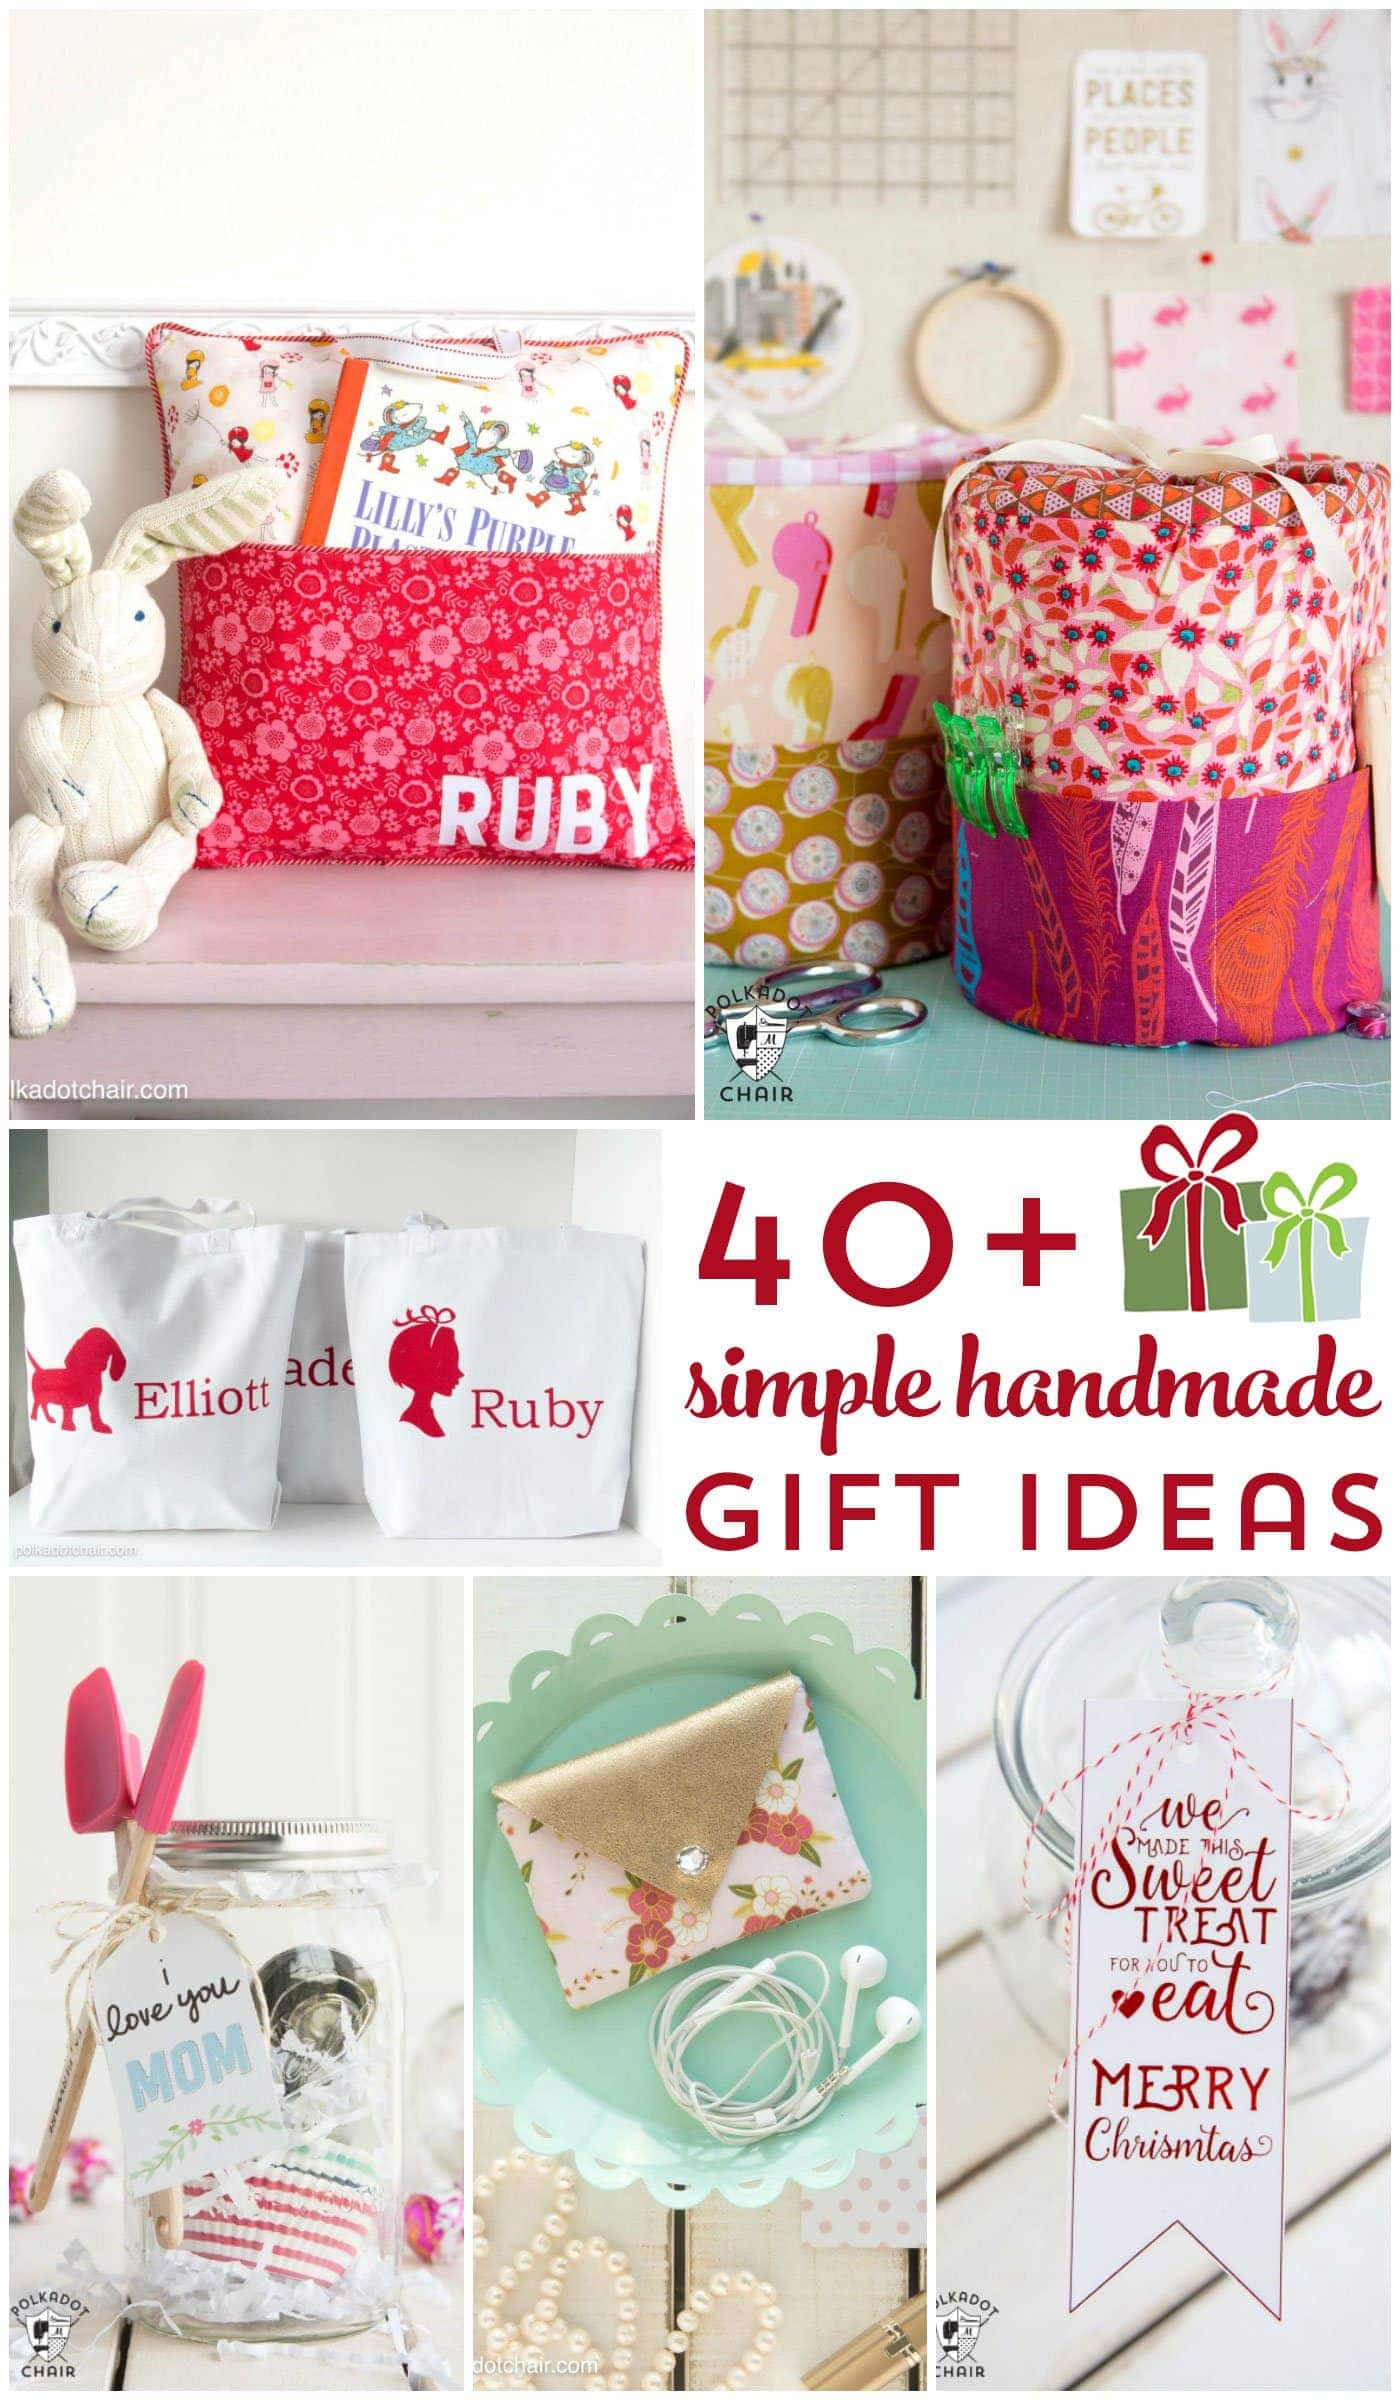 More than 40 Simple Handmade Gift Ideas - The Polka Dot Chair